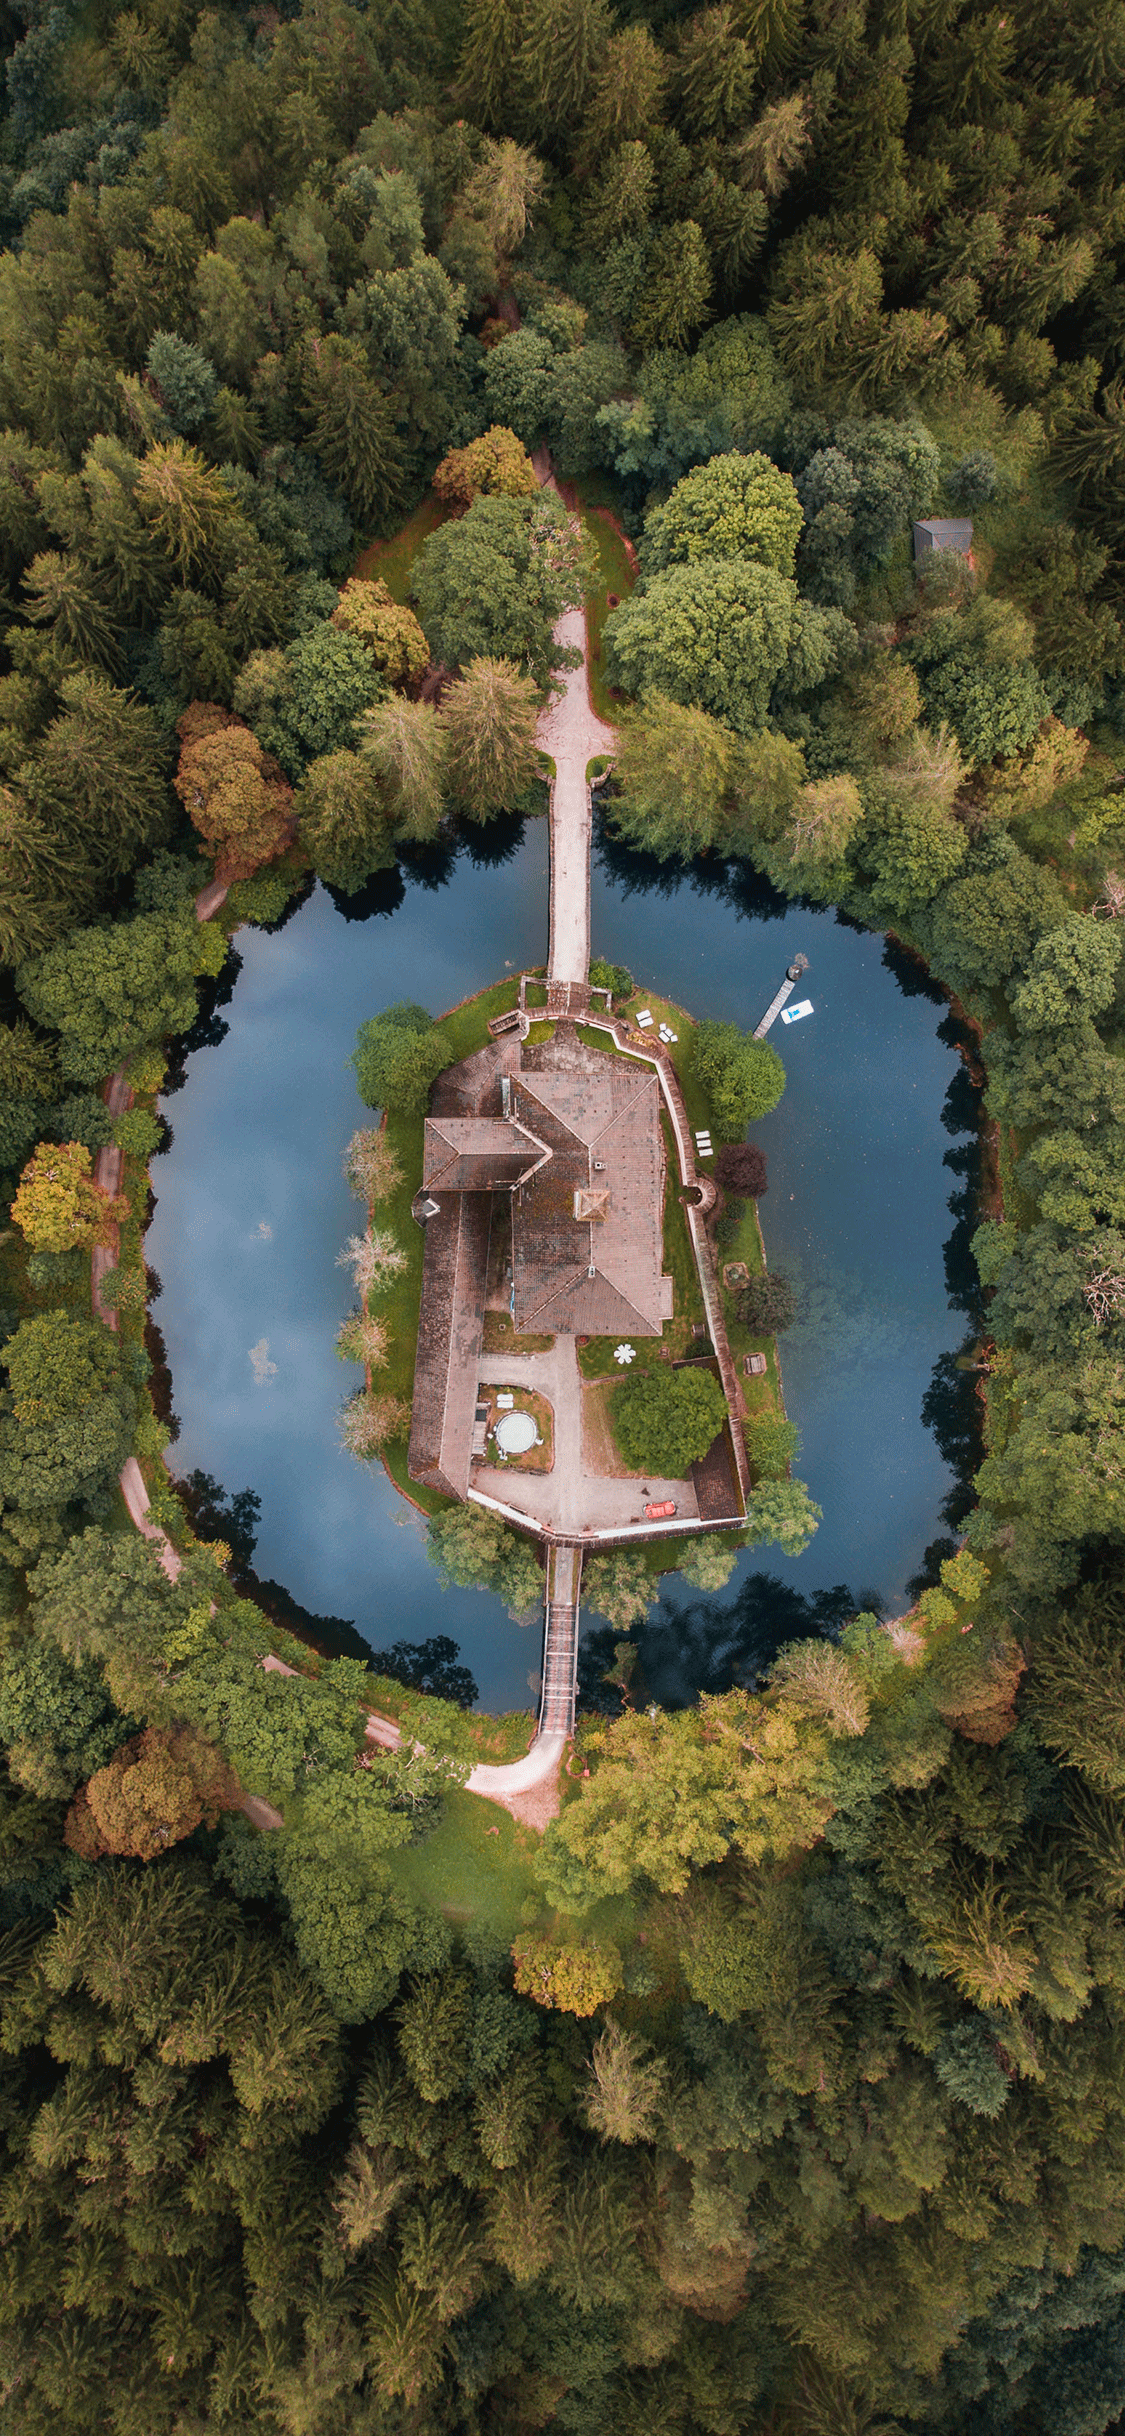 iPhone wallpaper aerial photo house Fonds d'écran iPhone du 04/10/2018